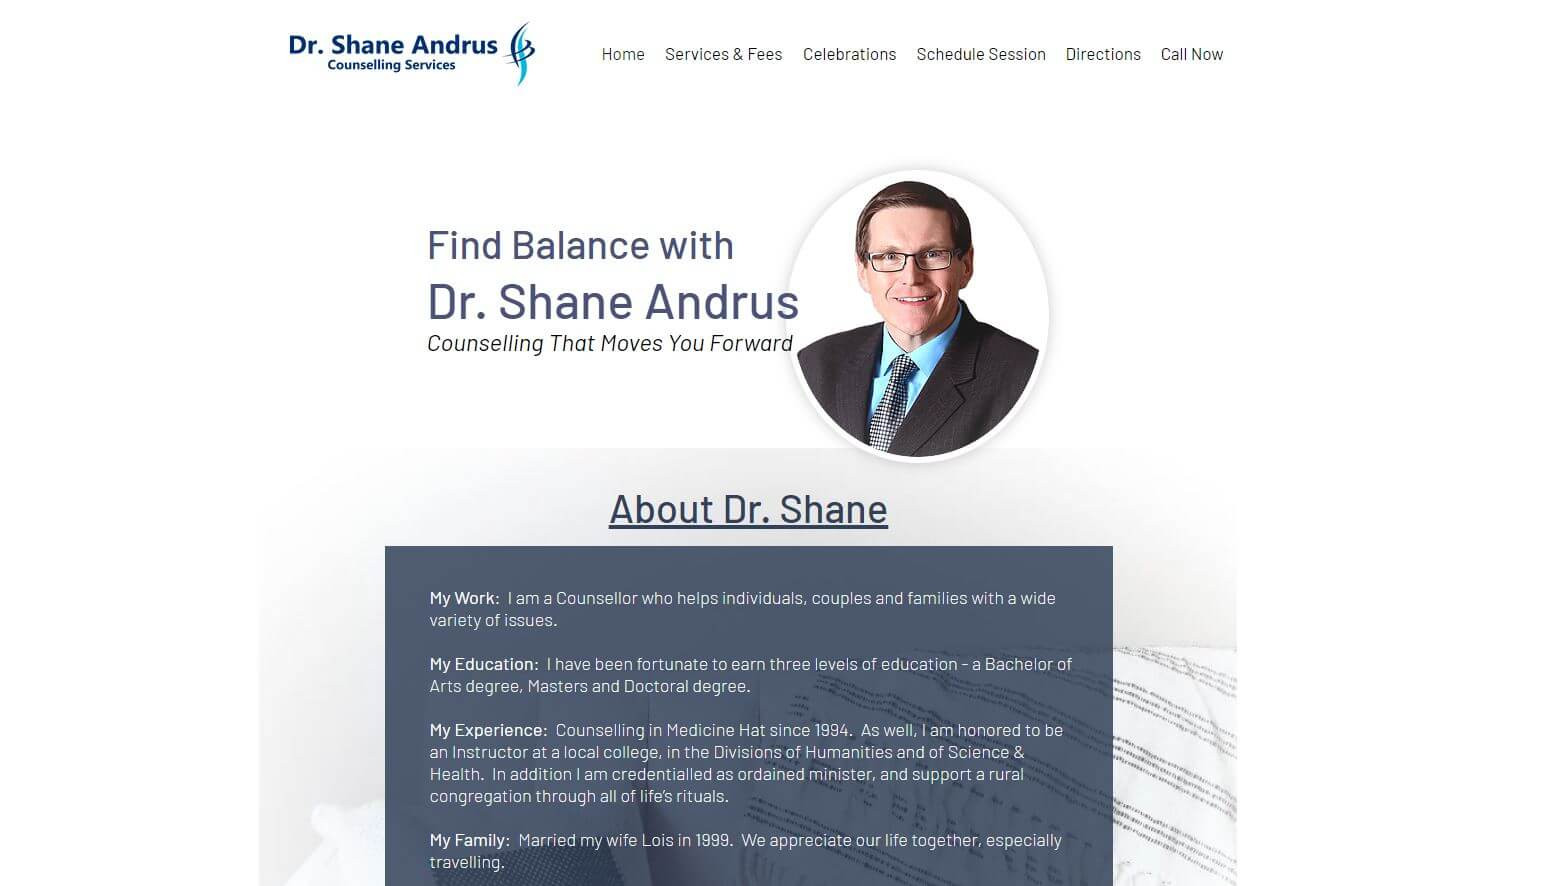 dr shane andrus home wider screenshot CO